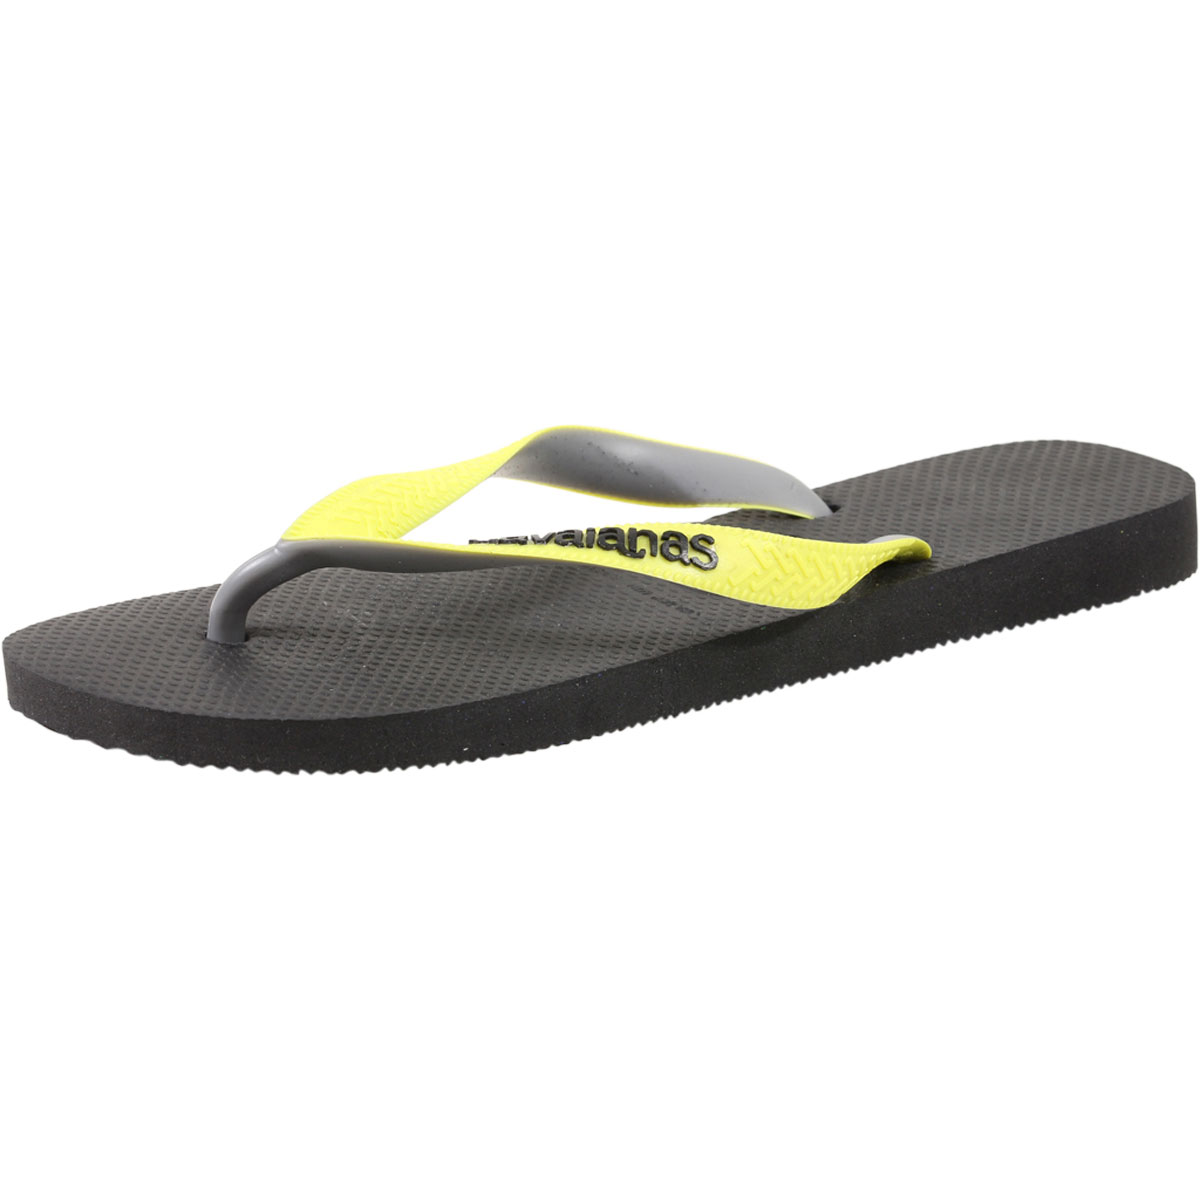 f9a3a114415e6 Havaianas Top Mix Flip Flops Sandals Shoes